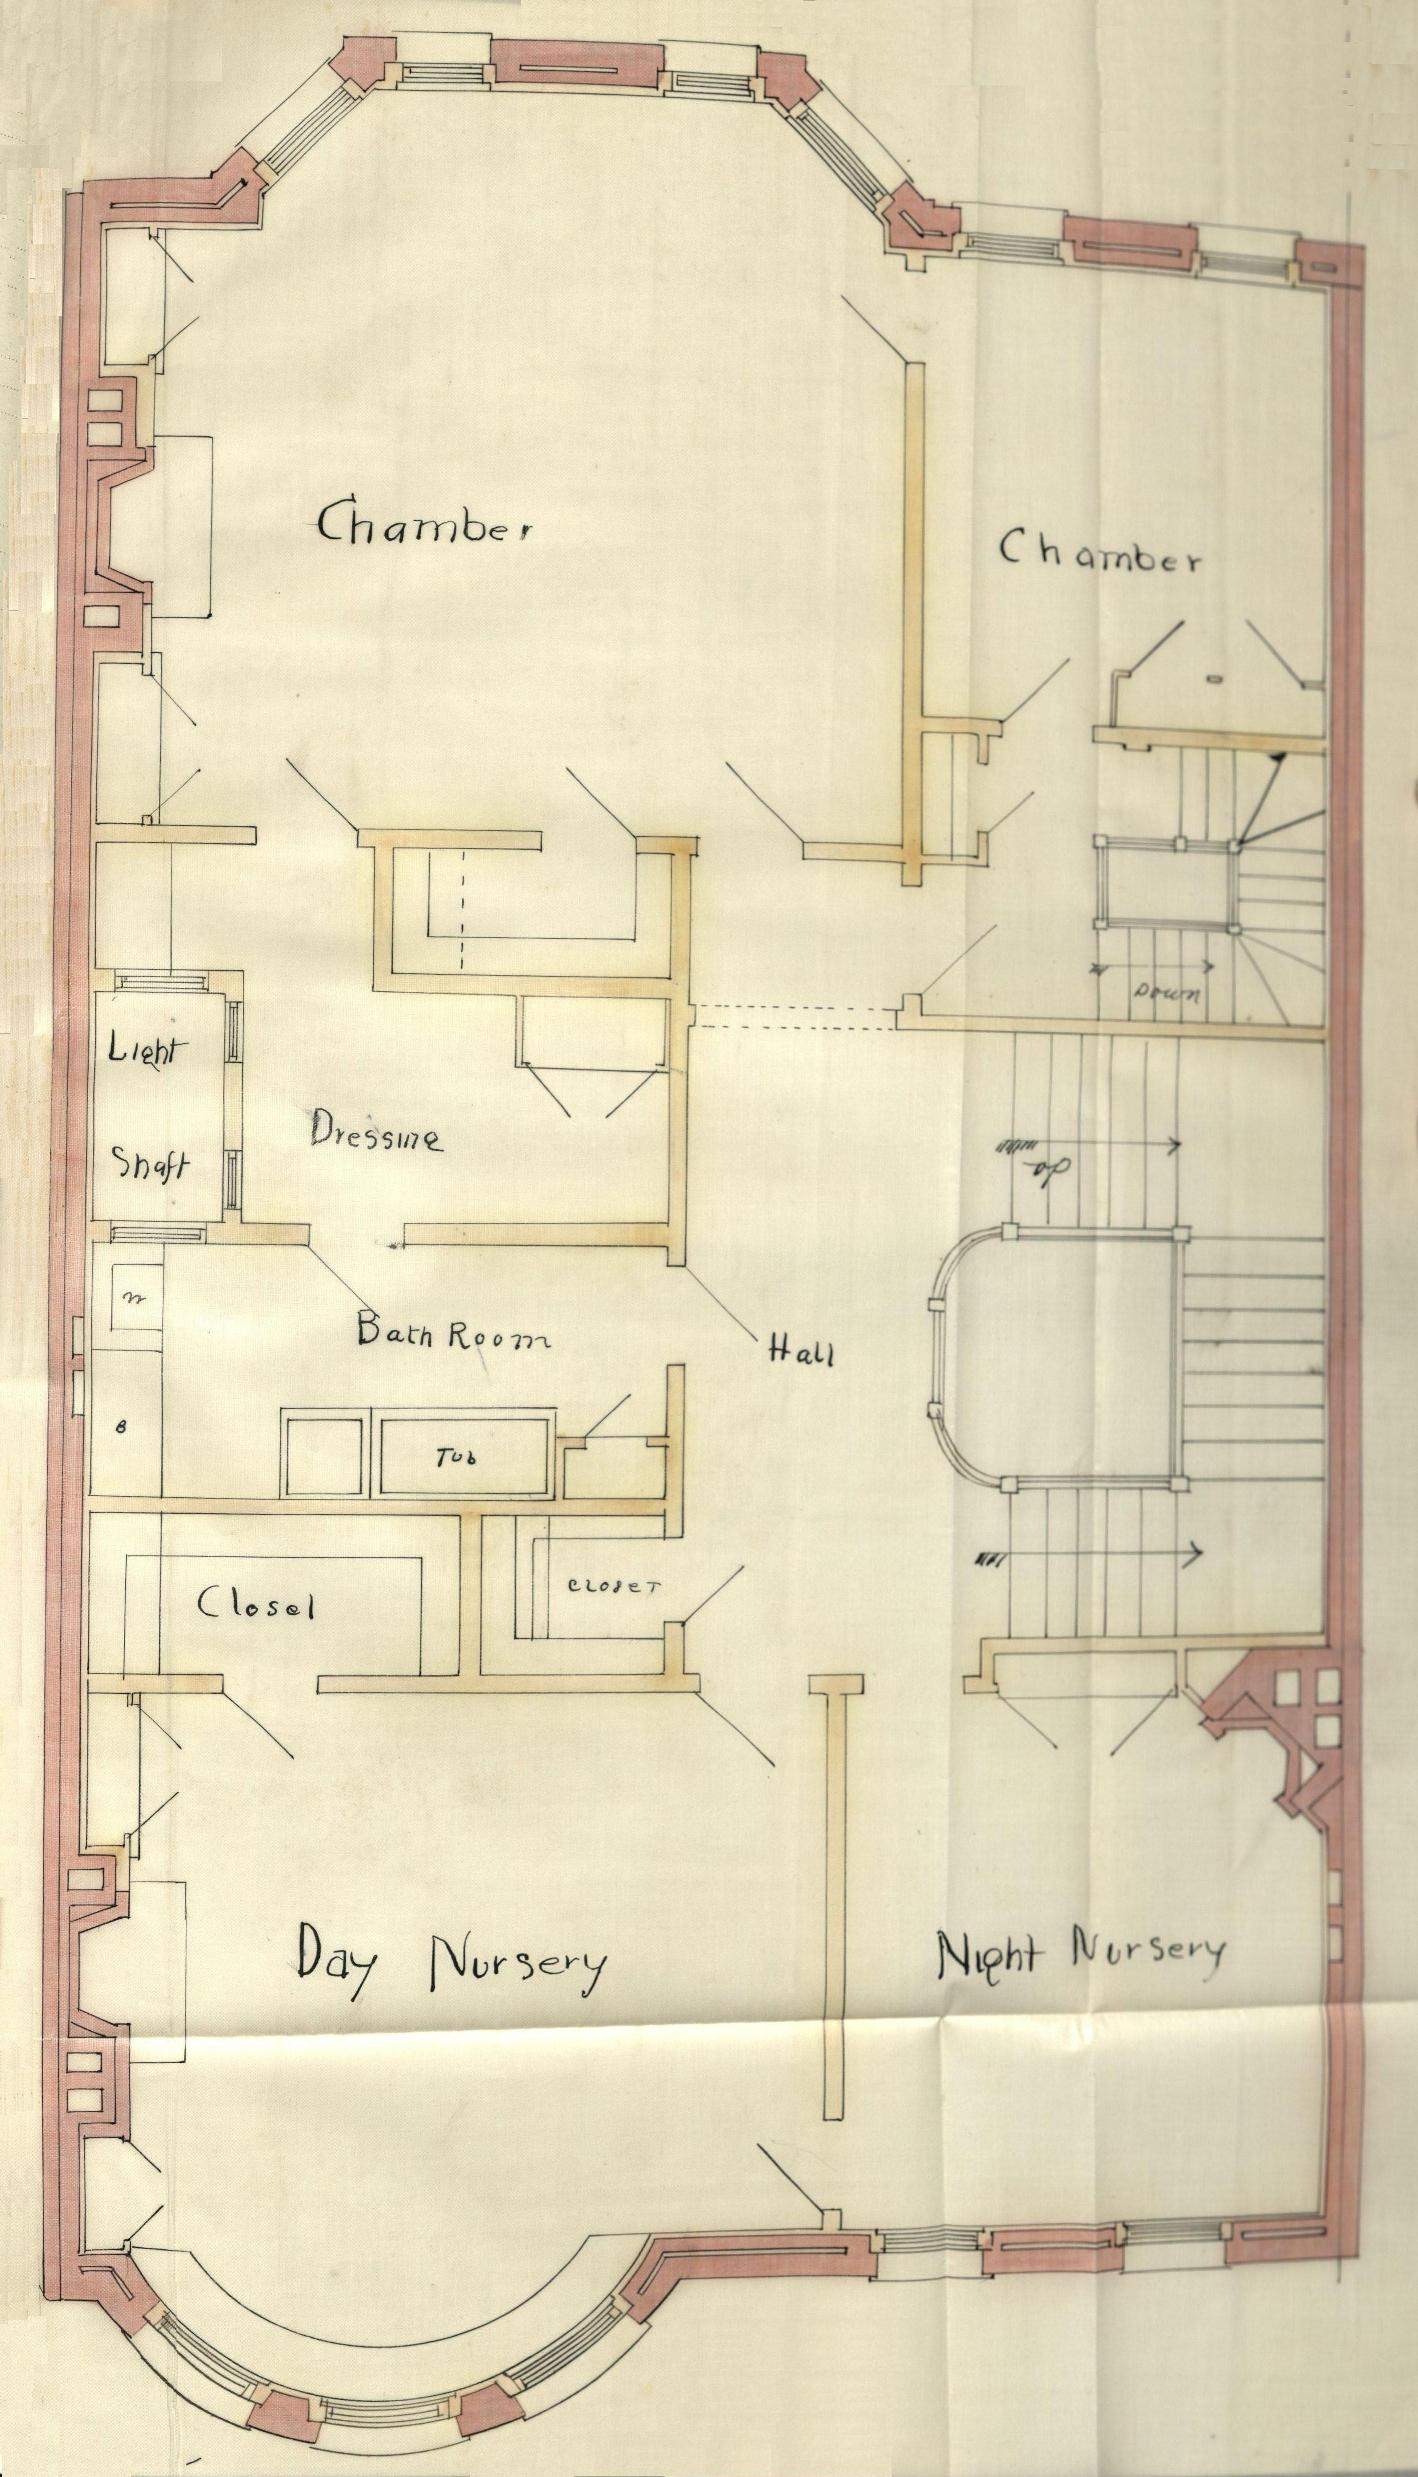 401 marlborough back bay houses for Marlborough house floor plan